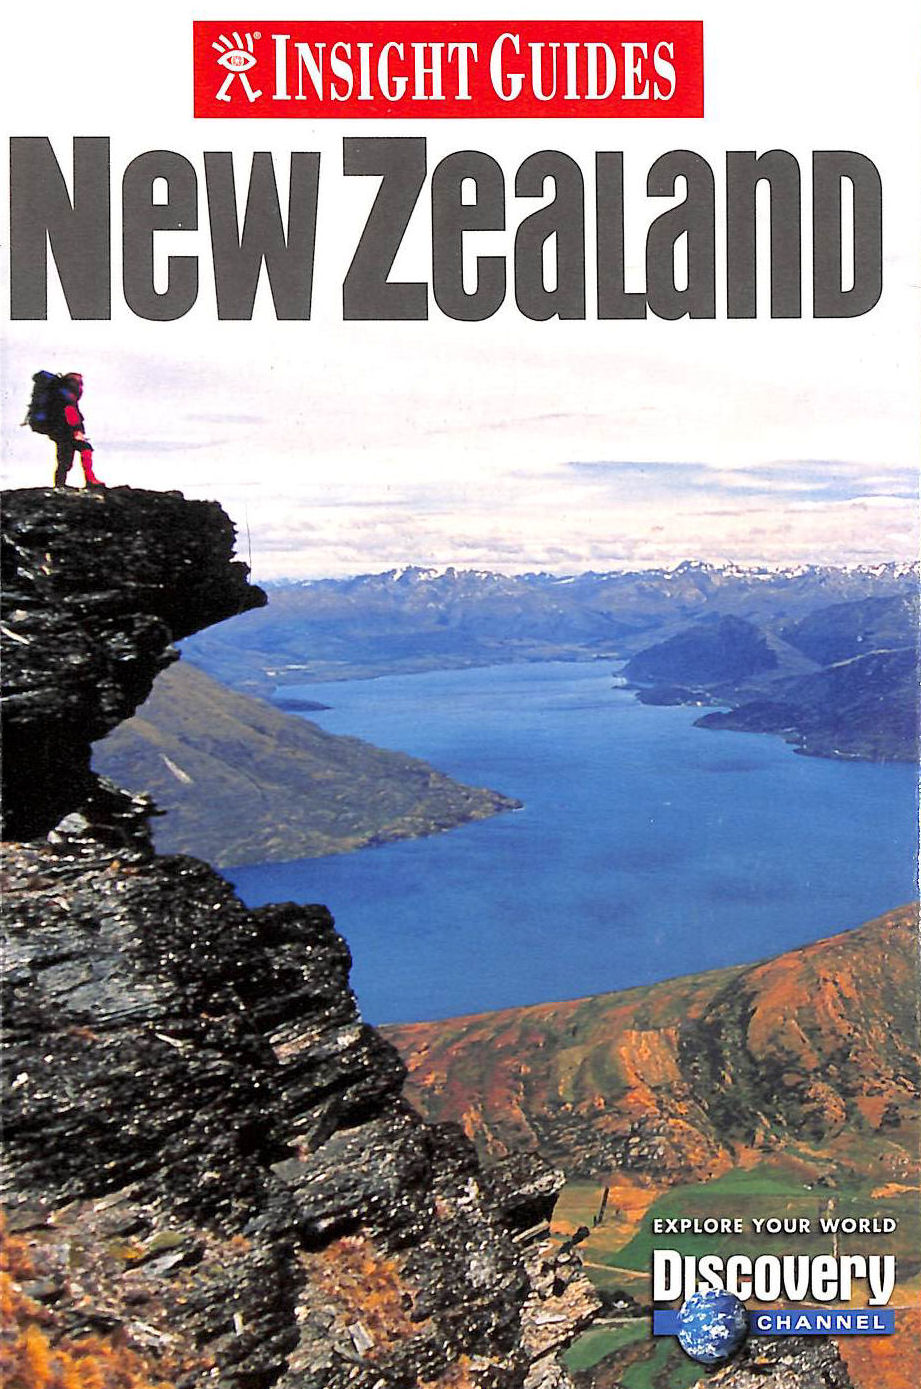 Image for New Zealand Insight Guide (Insight Guides)